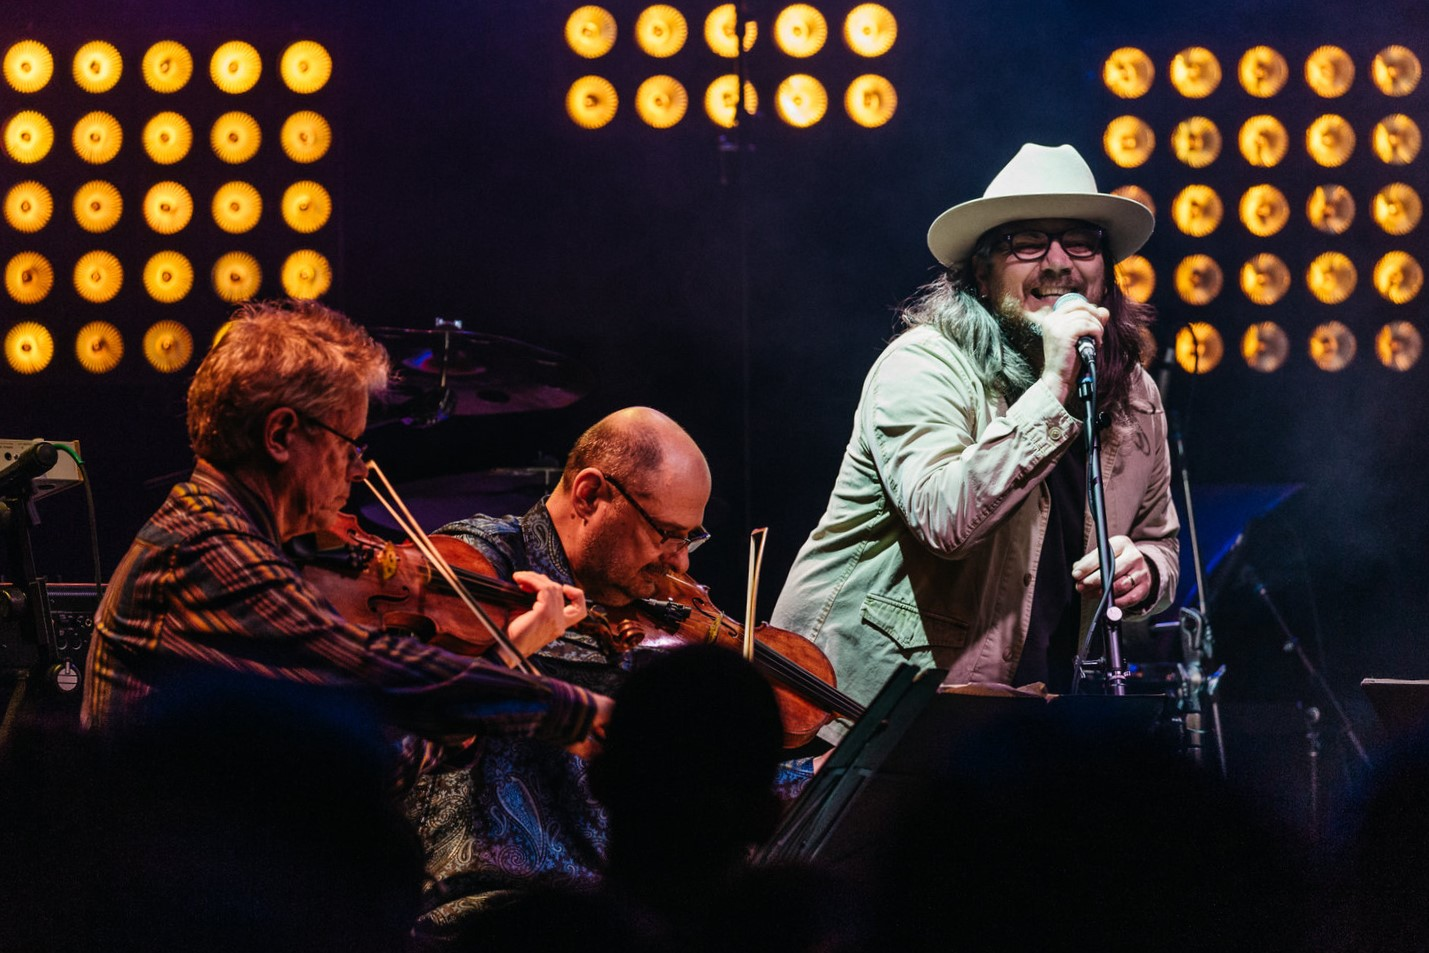 Kronos Quartet and Jeff Tweedy at 9:30 Club (Photo by Mauricio Castro /  @themauricio )